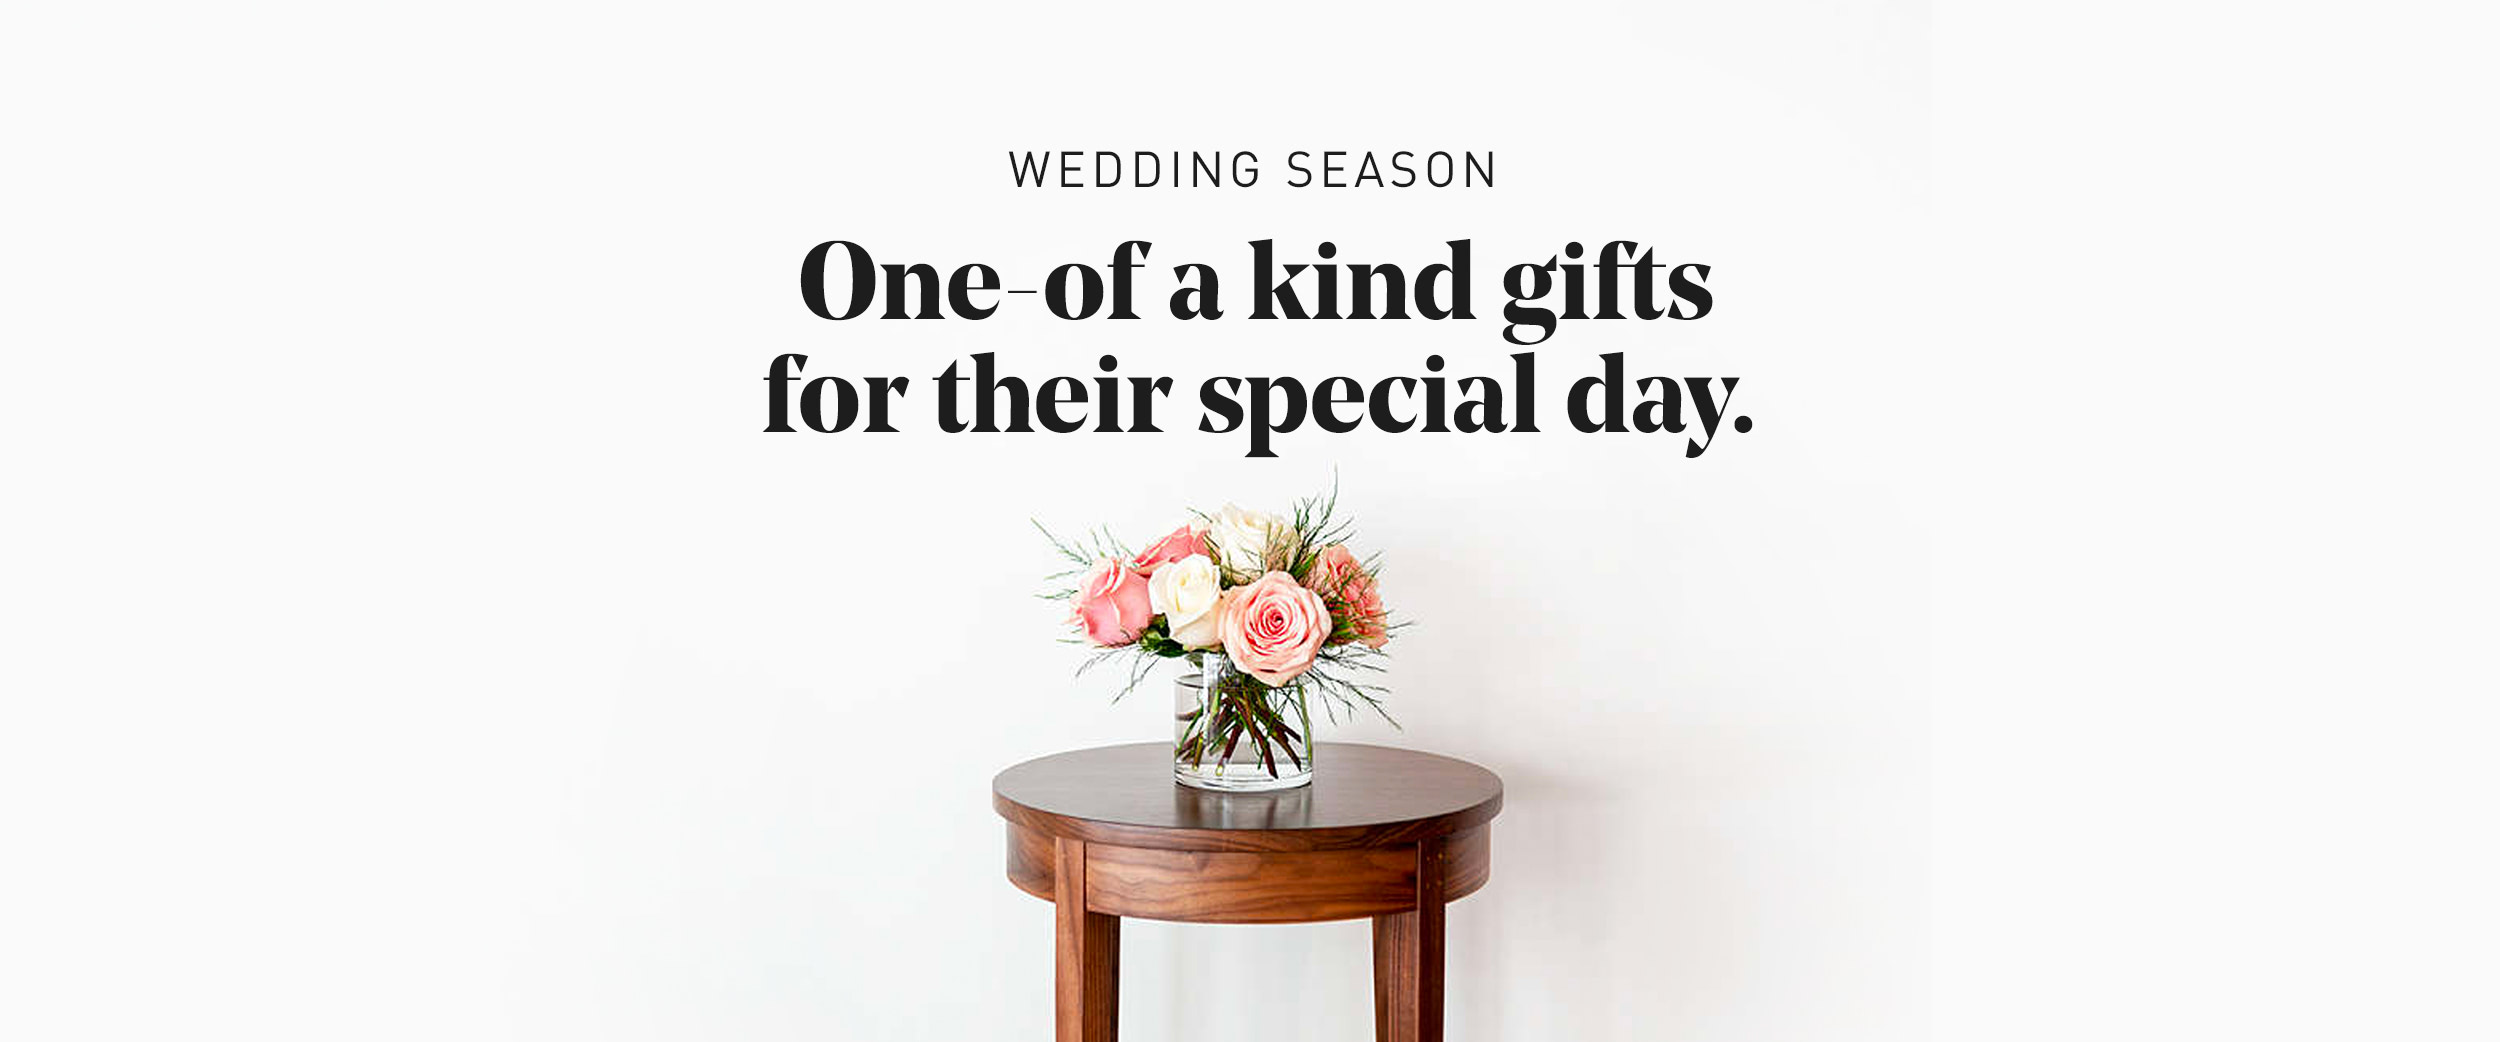 Wedding Season - One of a kind gifts for their special day